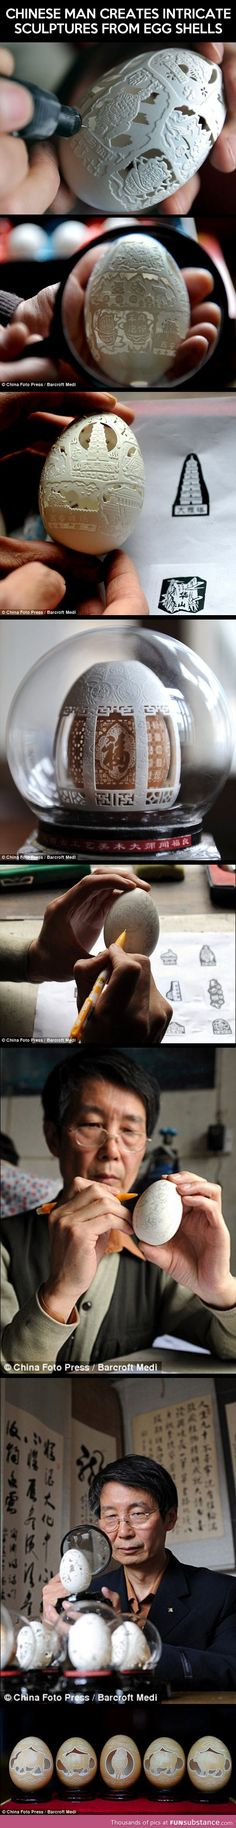 Intricate sculptures from egg shells